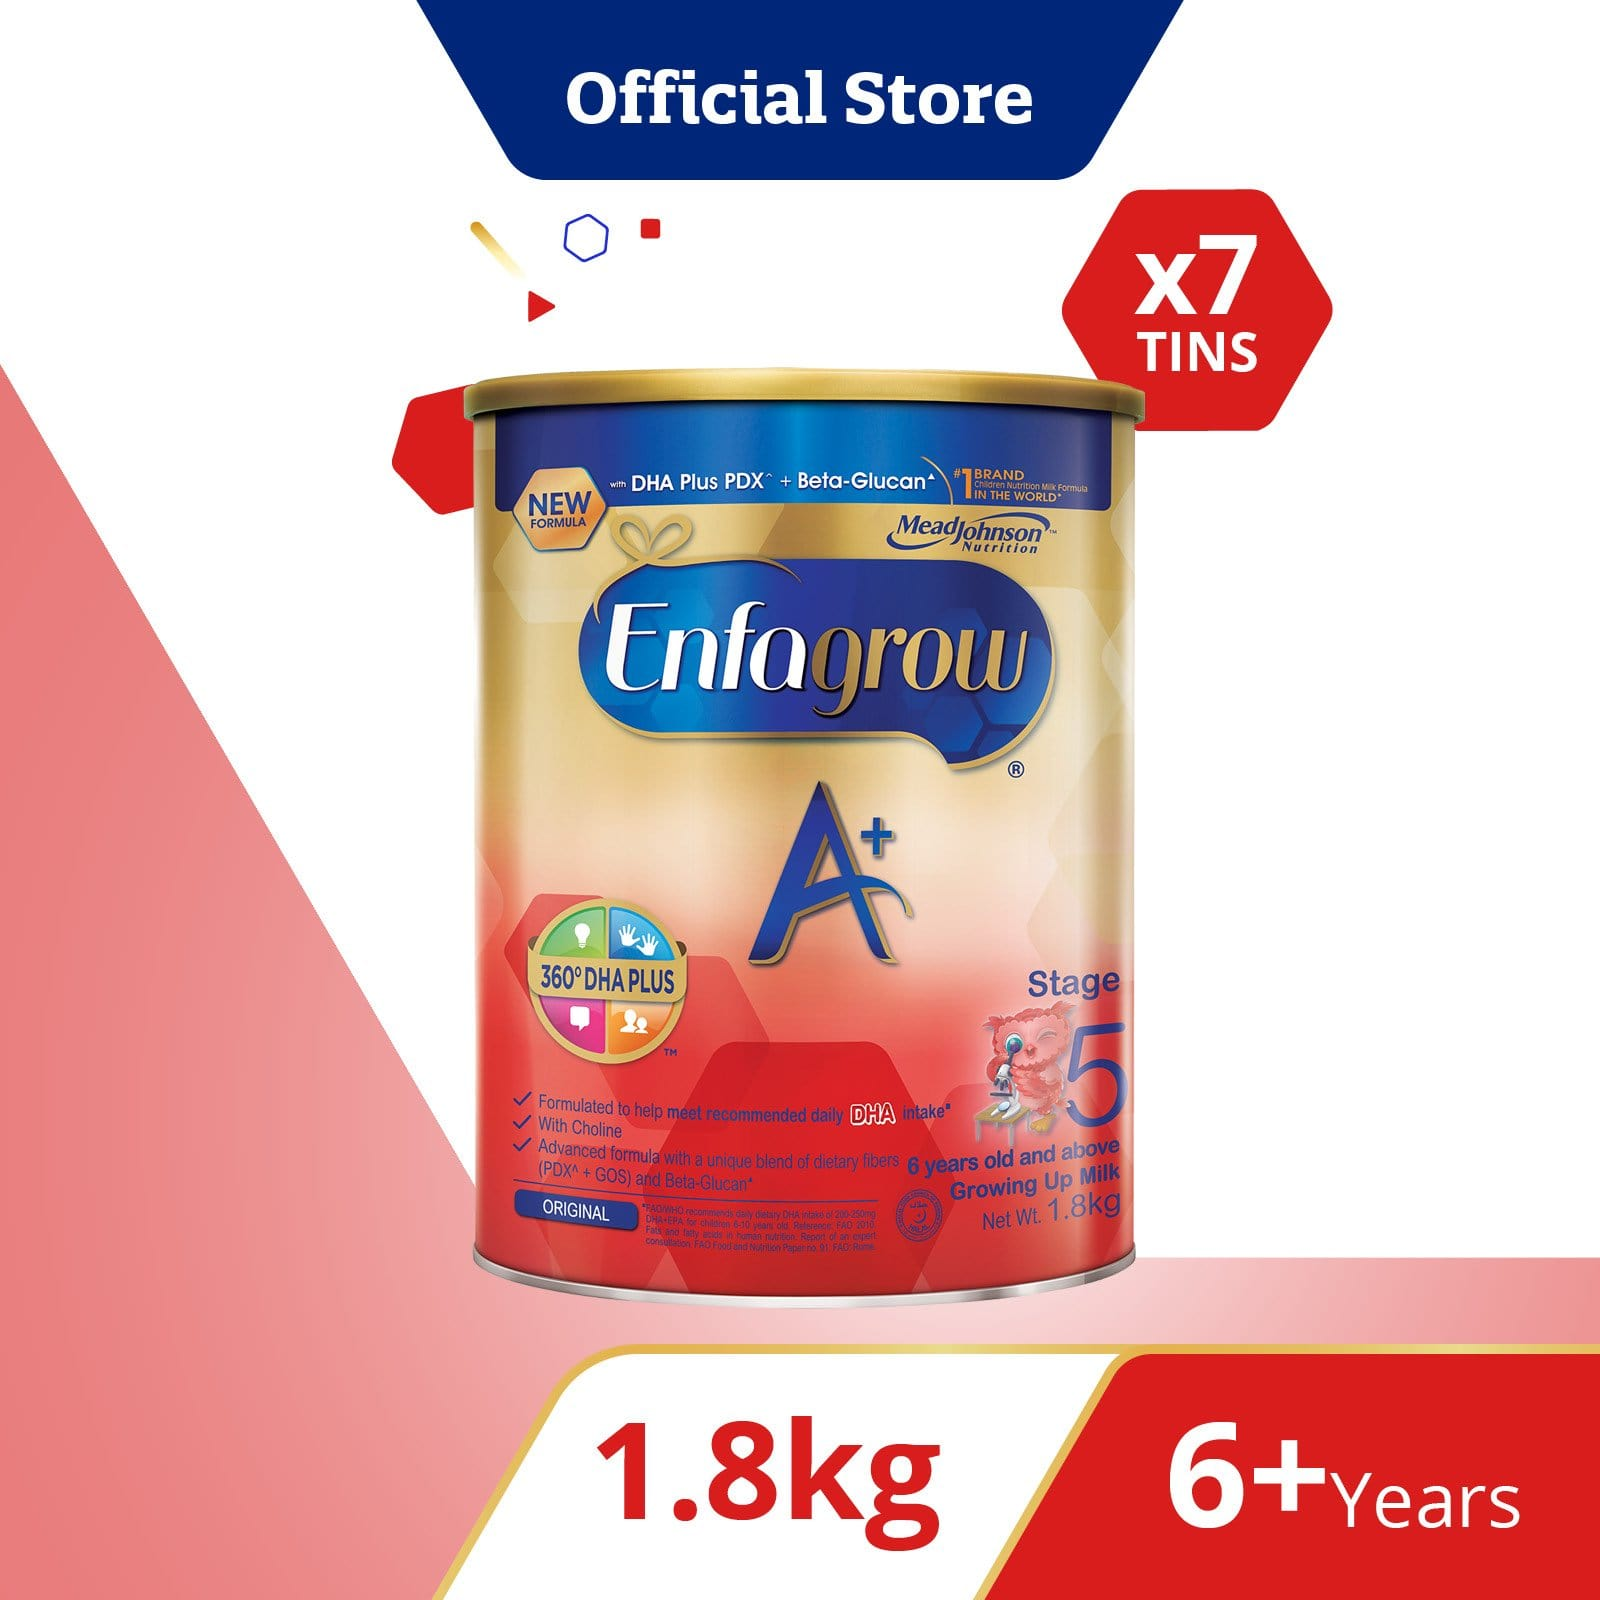 Enfagrow A+ Stage 5 (1.8kg) Bundle of 7